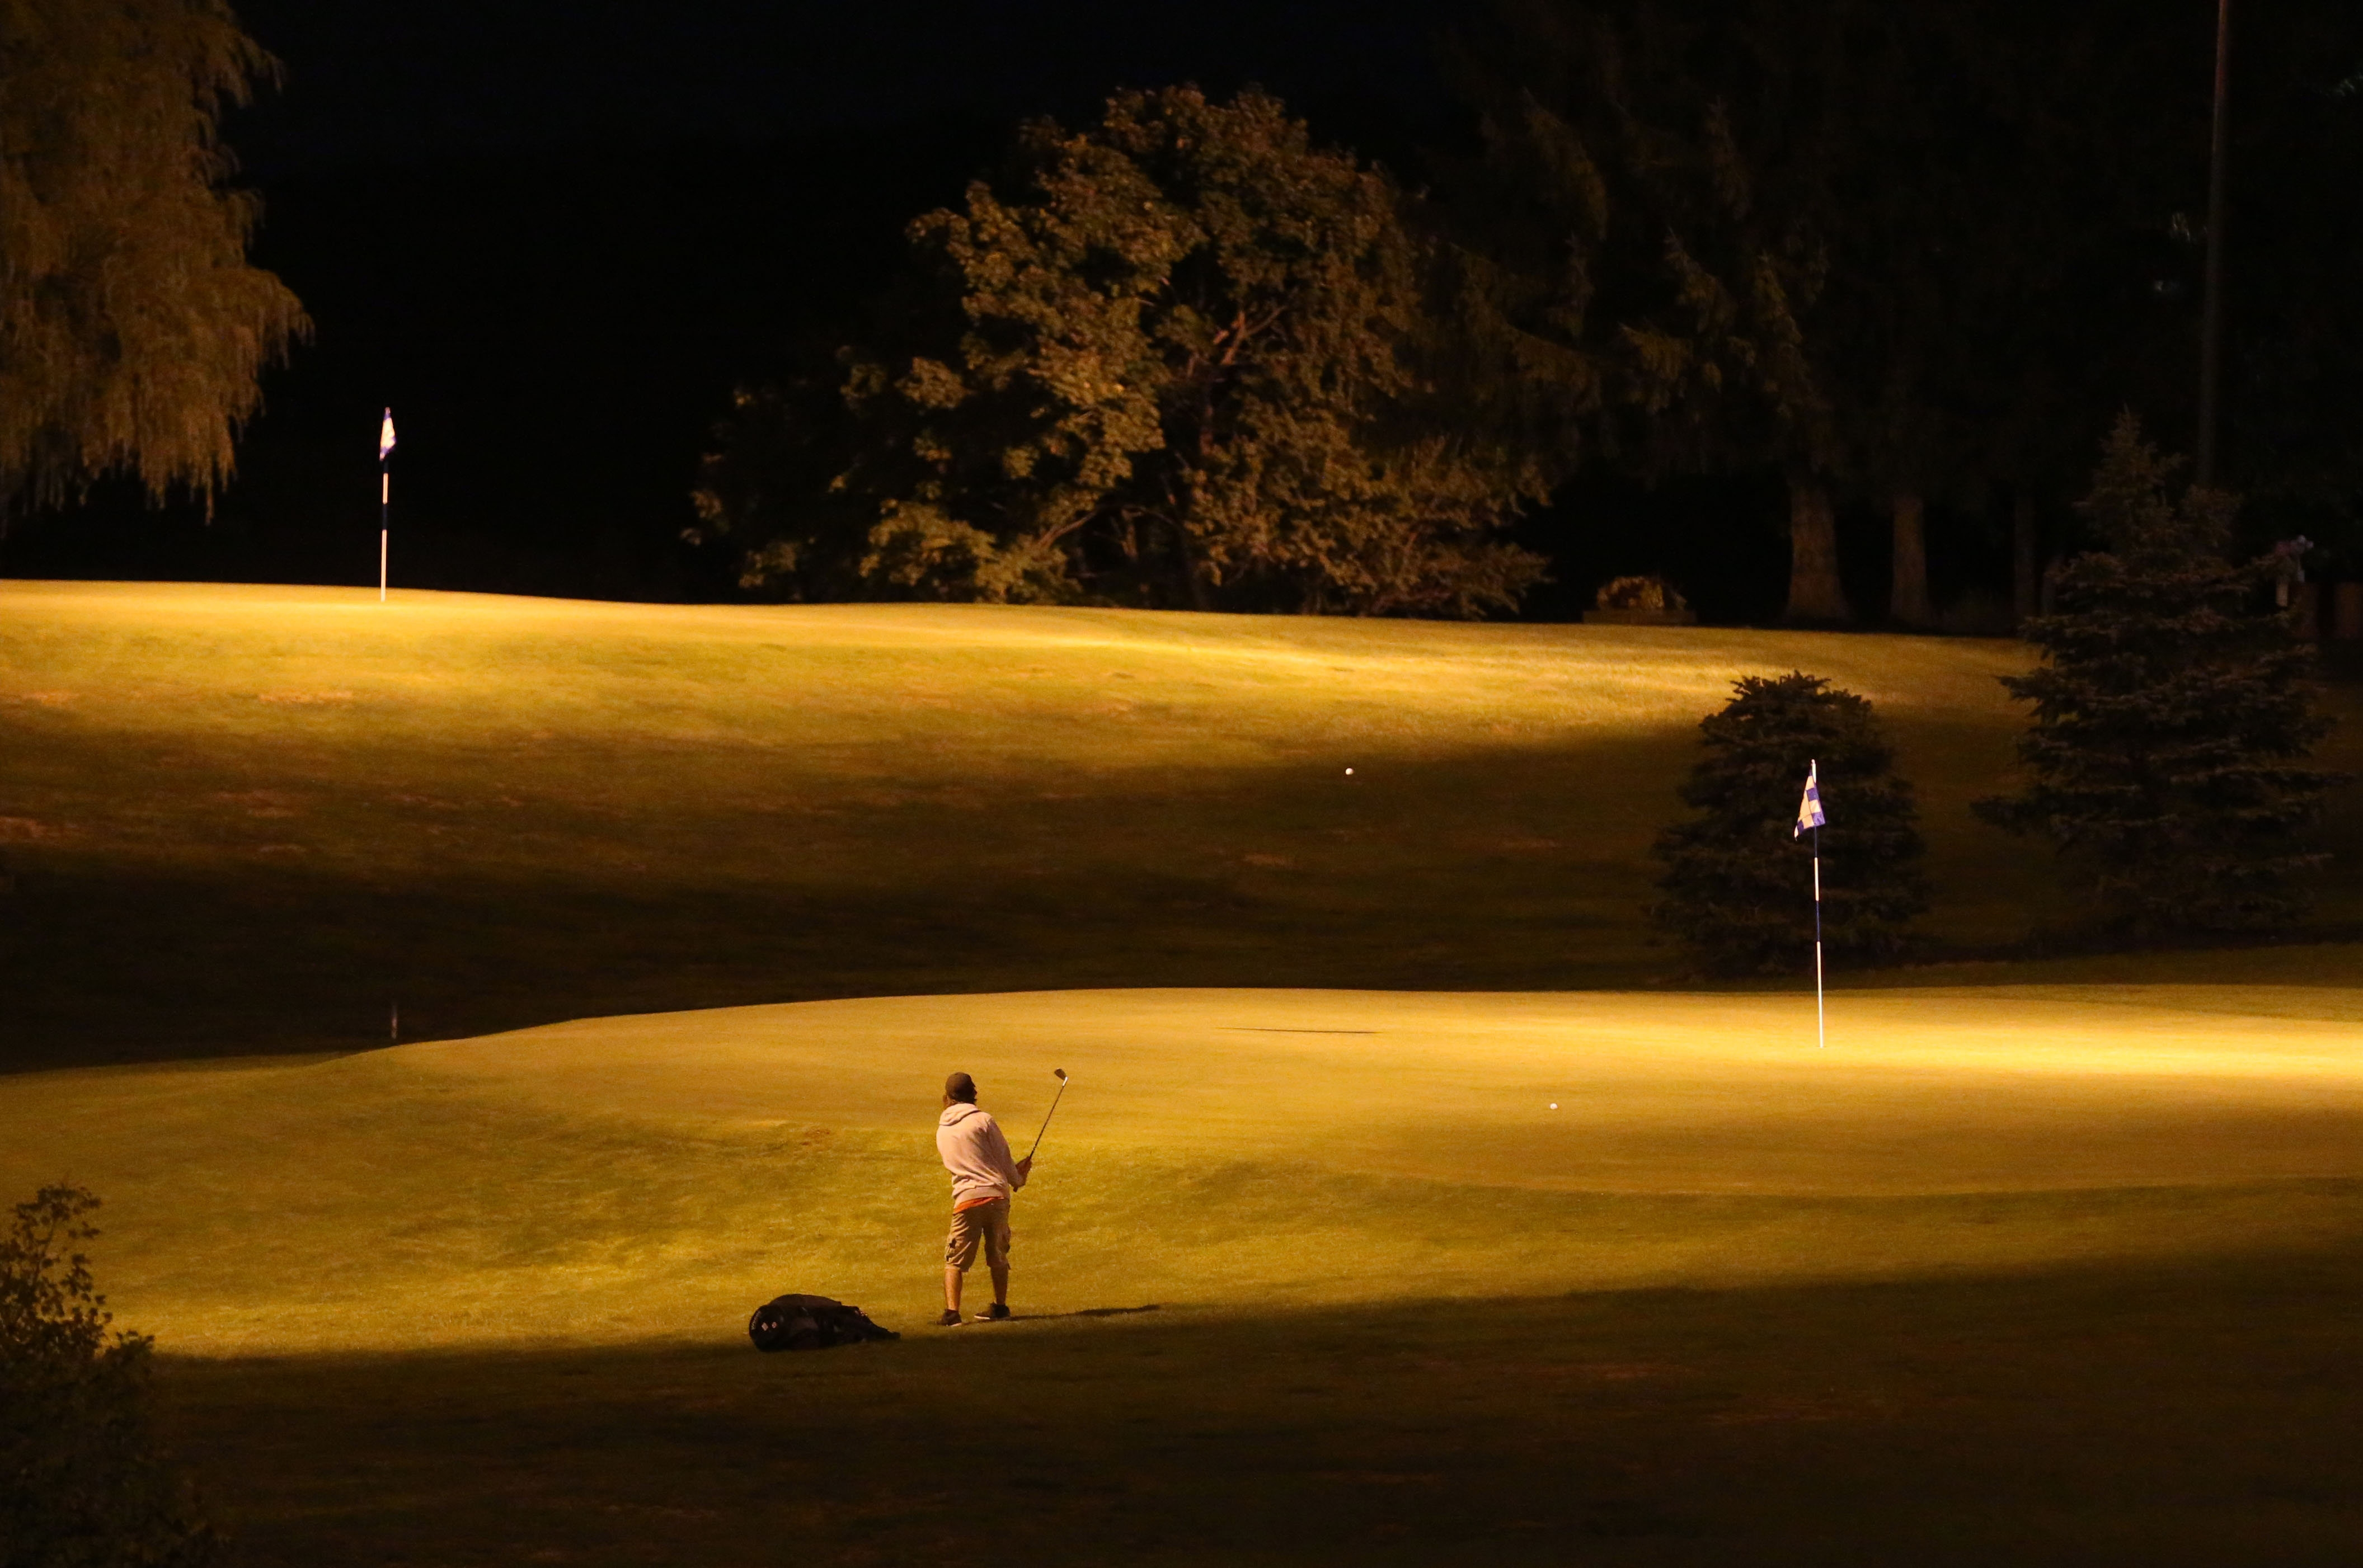 Night moves: Zach Lembke chips onto the 10th green during a recent round at Bob-O-Link Golf Club on Transit Road in Orchard Park, which also offers glow-in-the-dark balls, below, for $10. The last tee time at the family-run operation is at 9:30 p.m., and there is also a snack bar with beer, wine and food available.